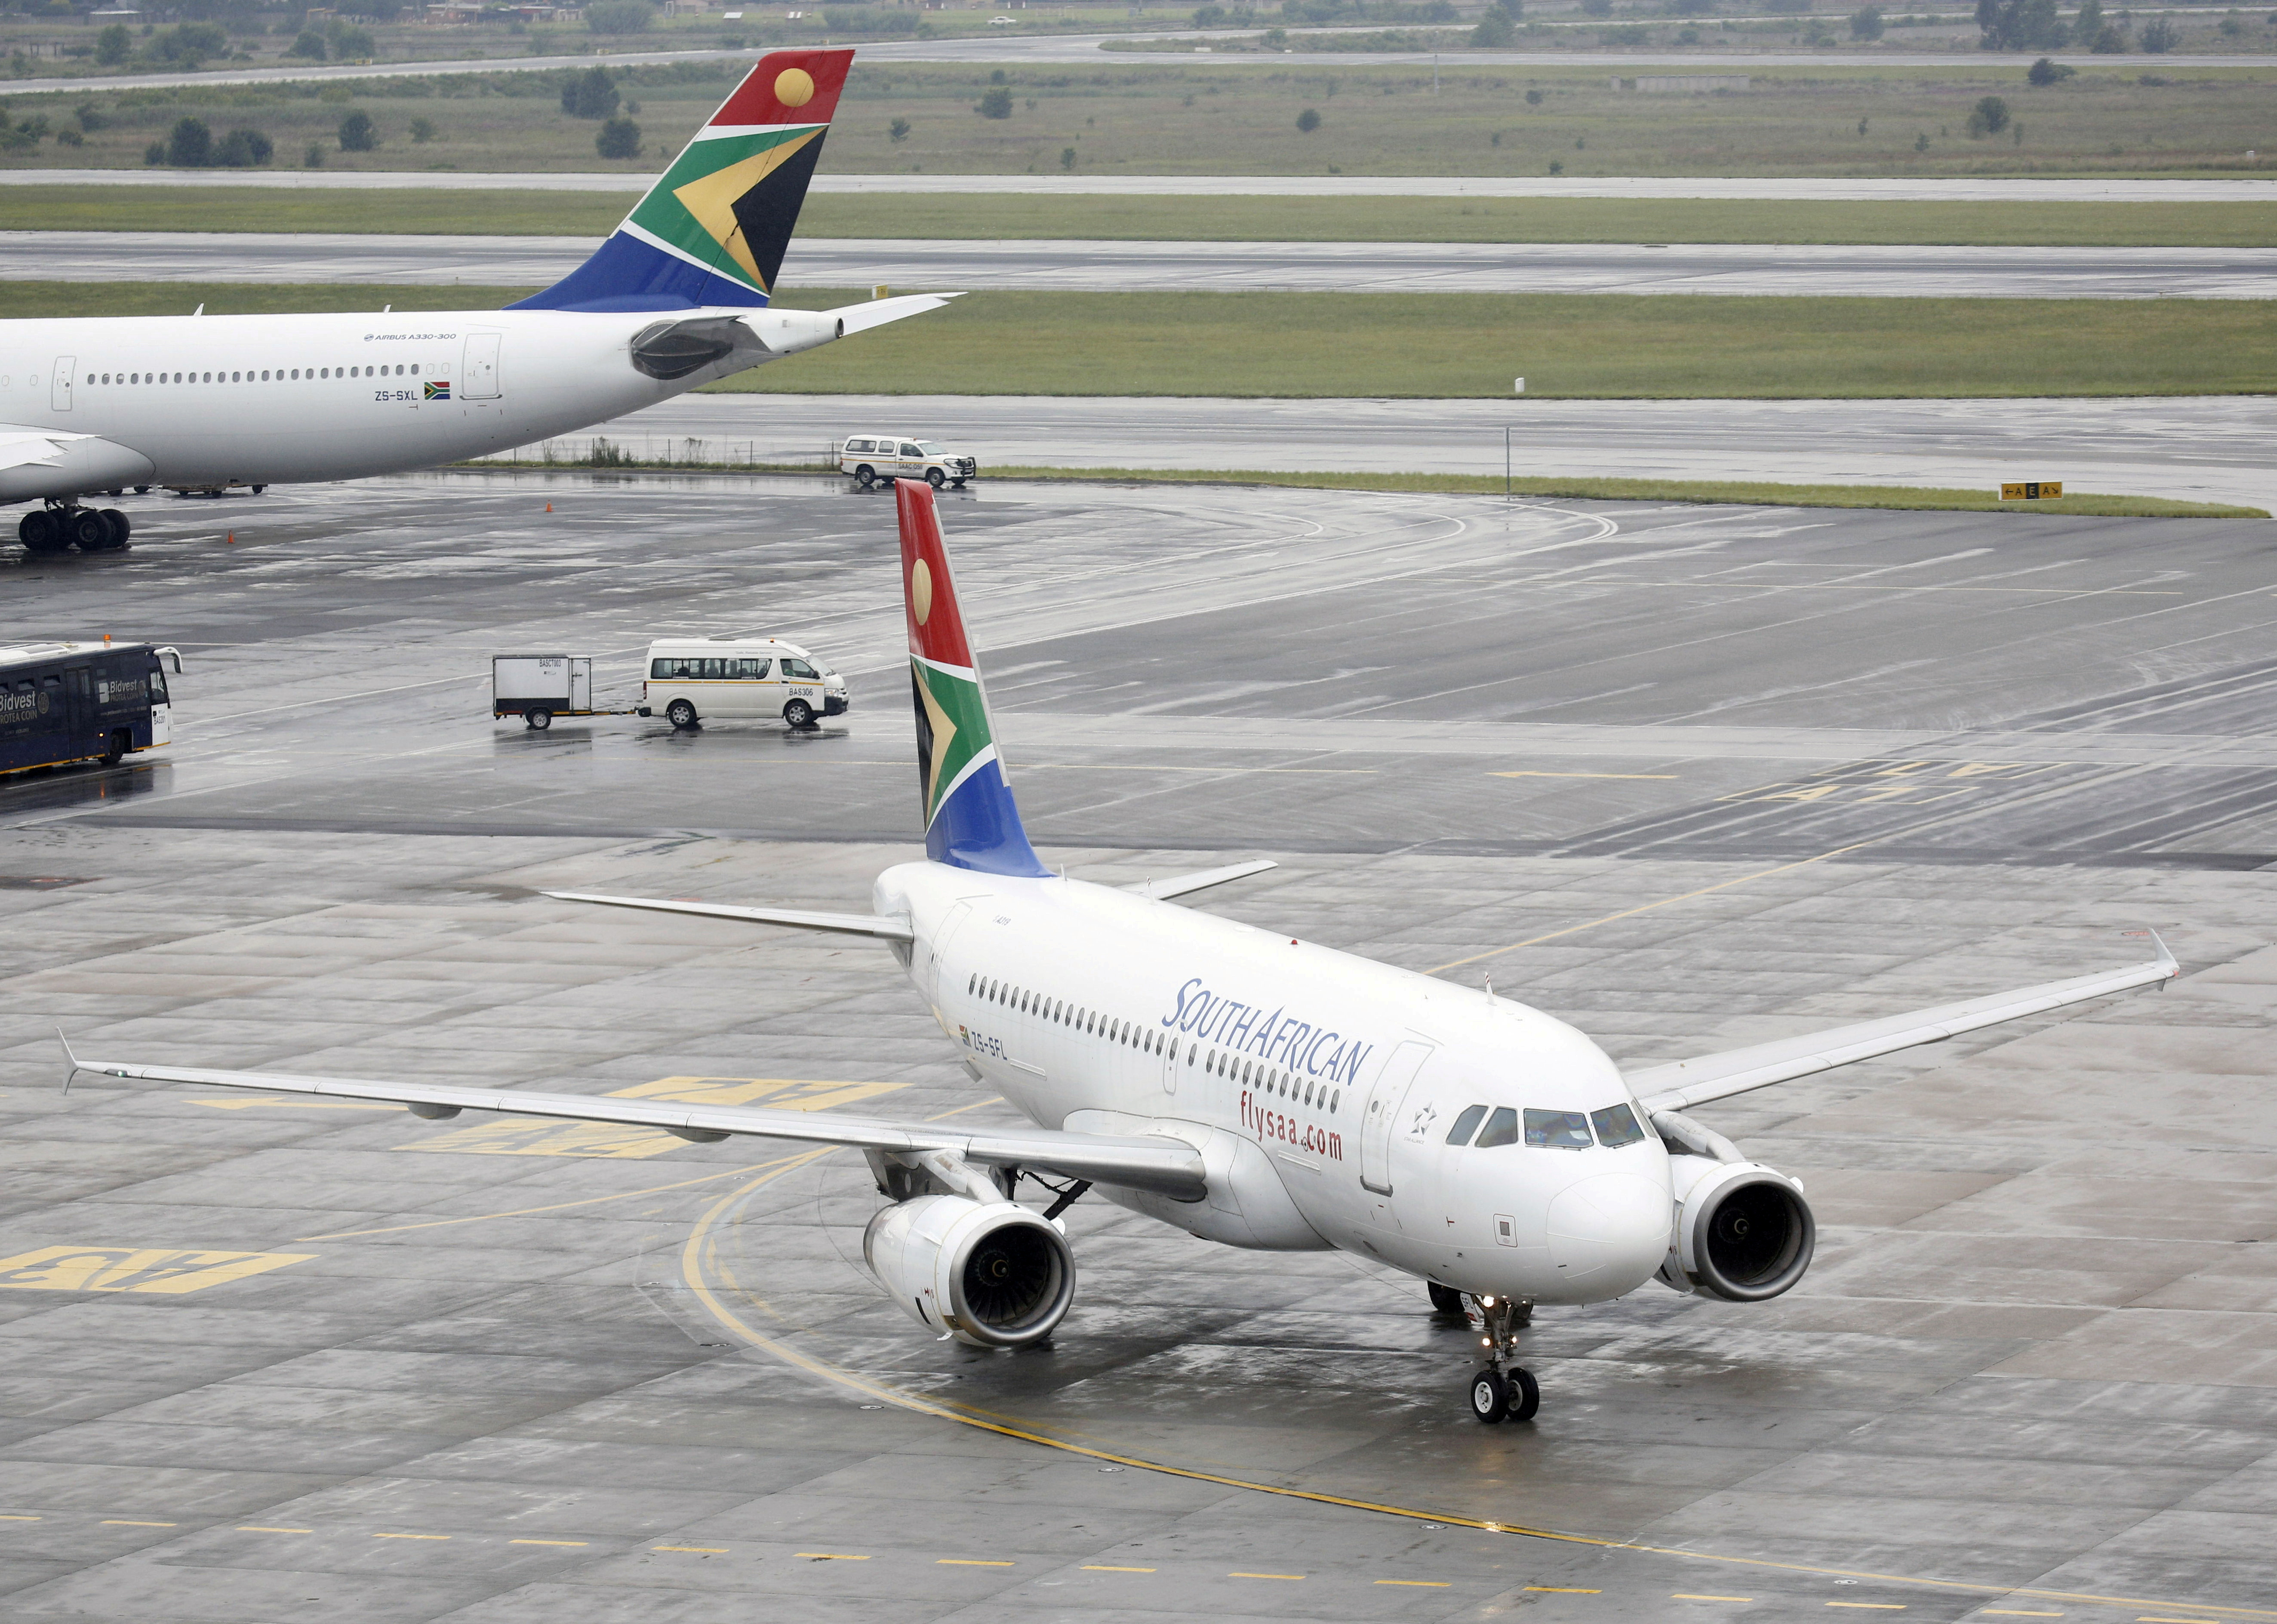 A South African Airways (SAA) plane taxis after landing at O.R. Tambo International Airport in Johannesburg, South Africa, January 18, 2020.   REUTERS/Rogan Ward/File Photo